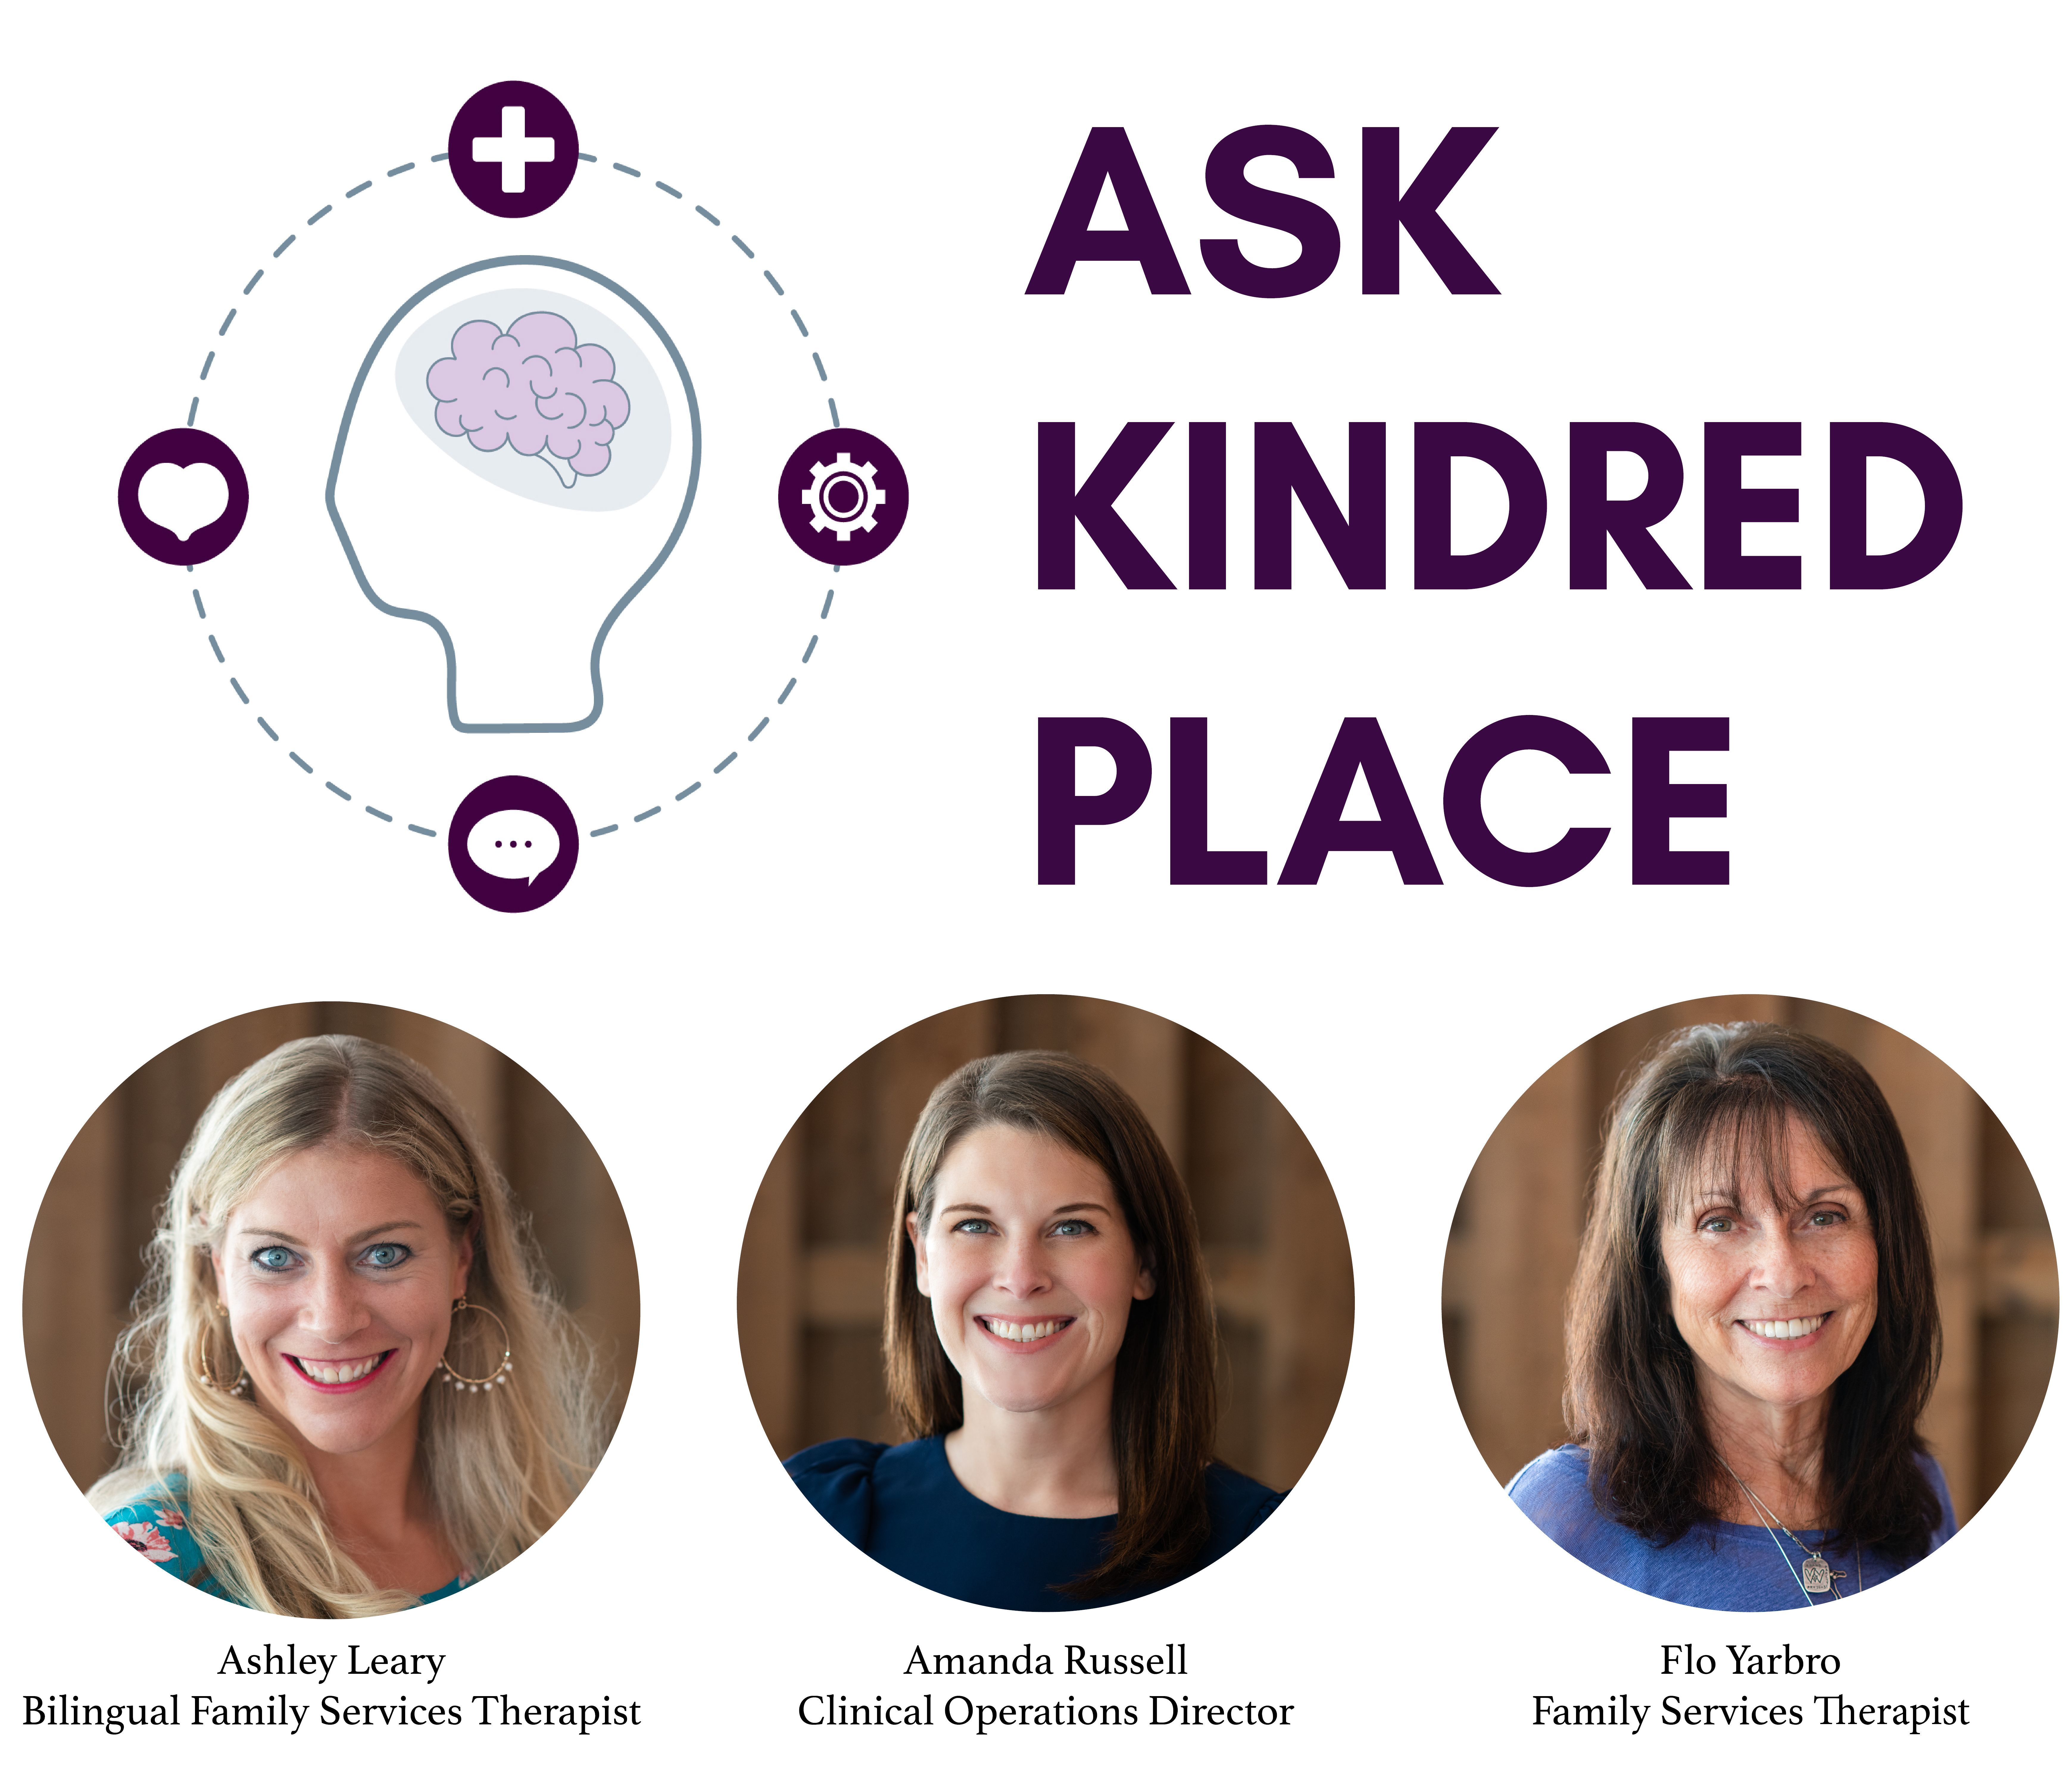 Ask Kindred Place - What is a healthy relationship?